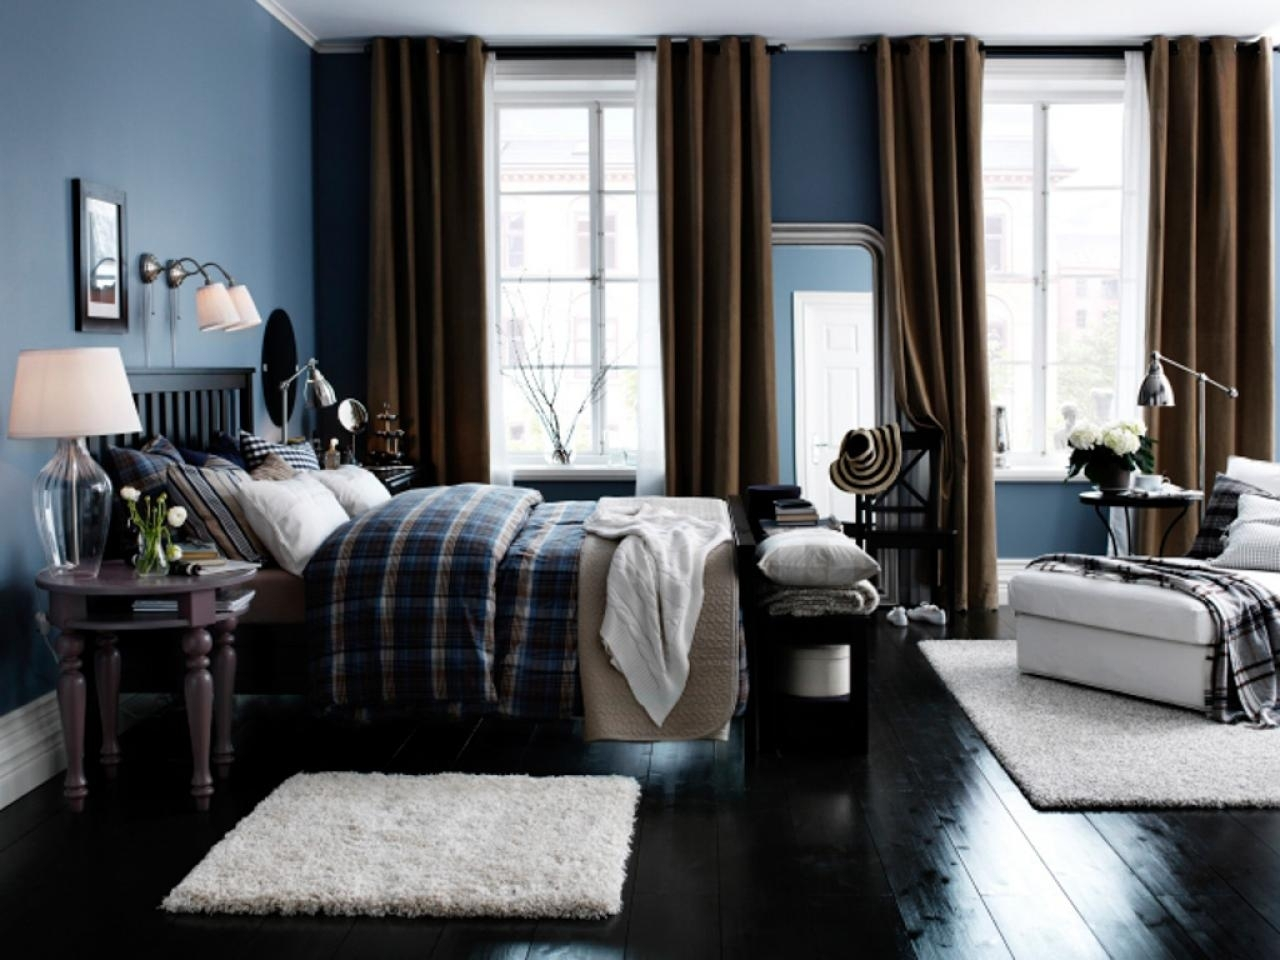 10 Fantastic Brown And Blue Bedroom Ideas %name 2021